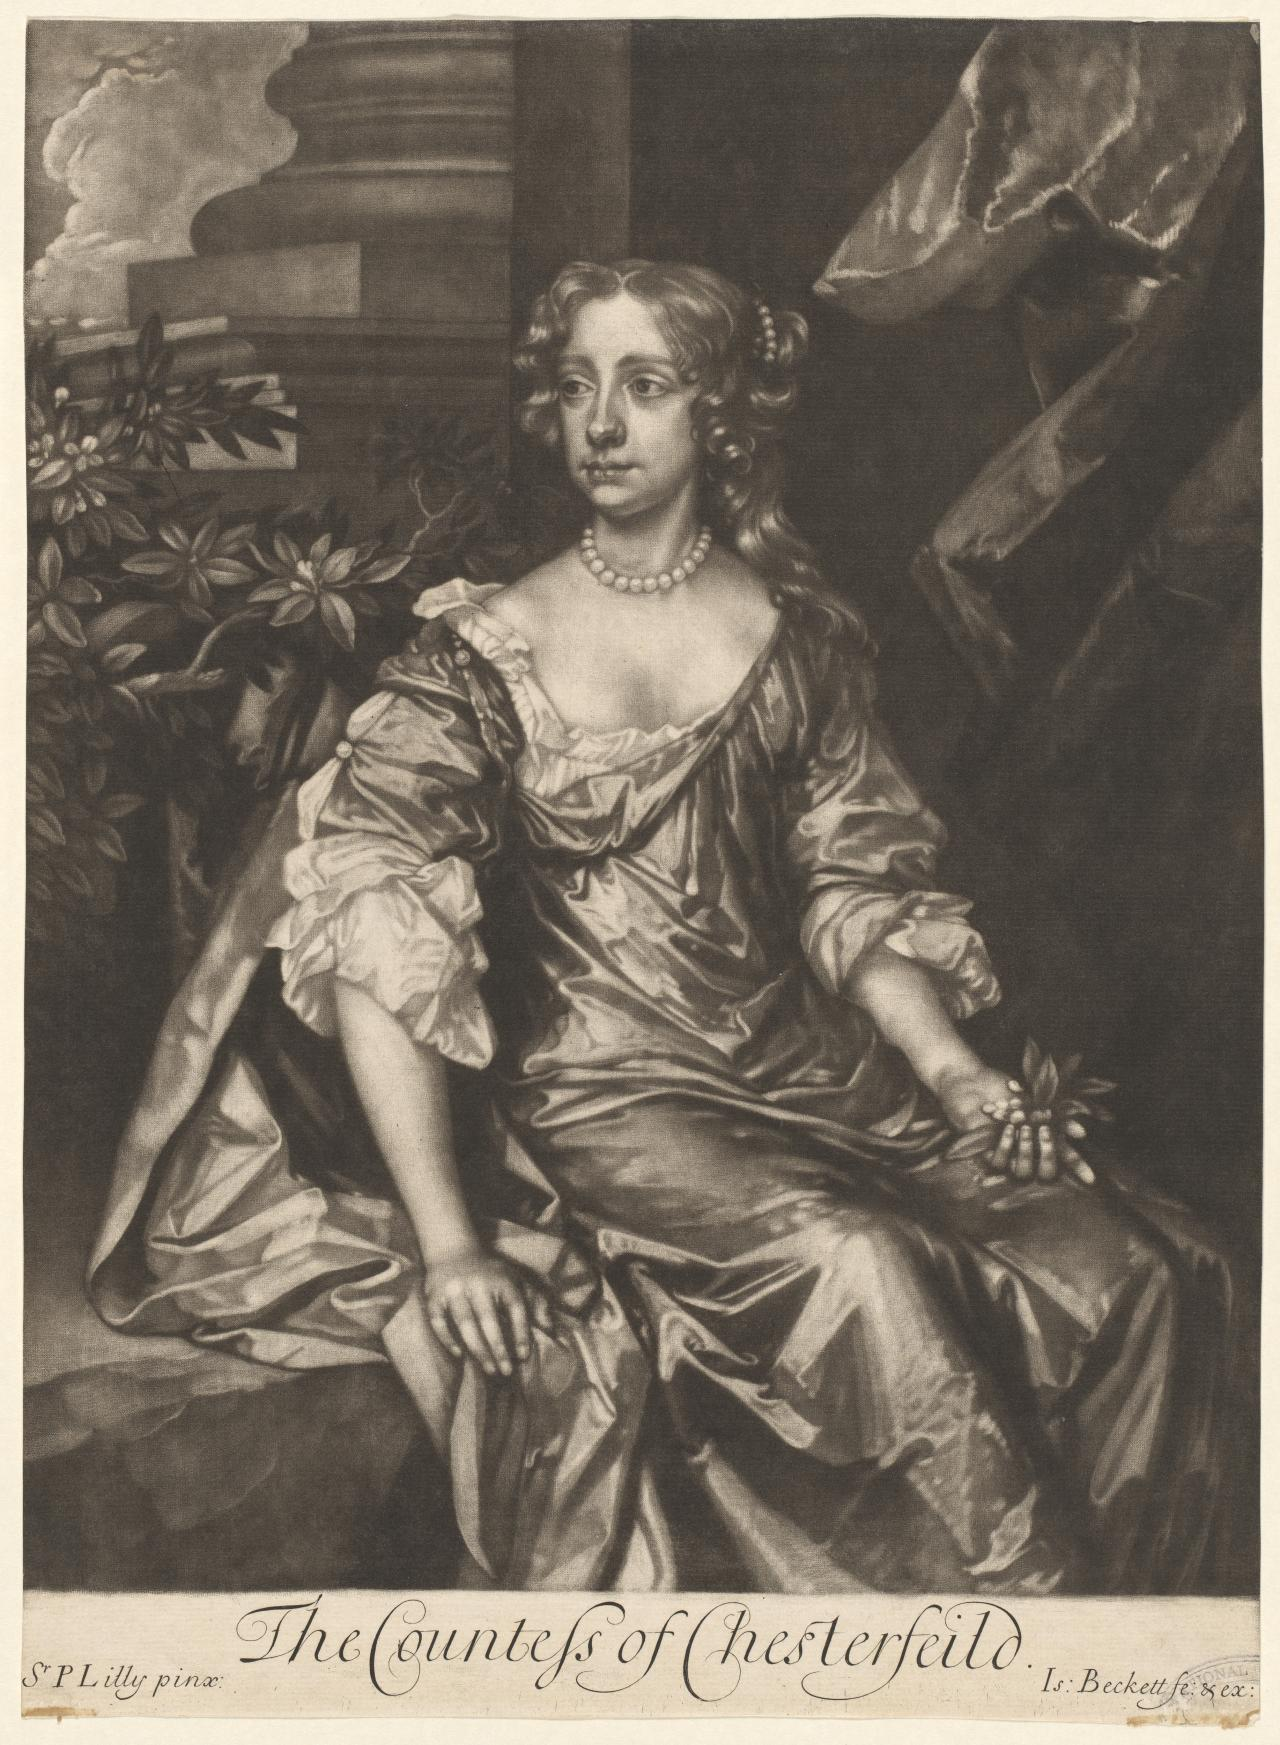 The Countess of Chesterfield